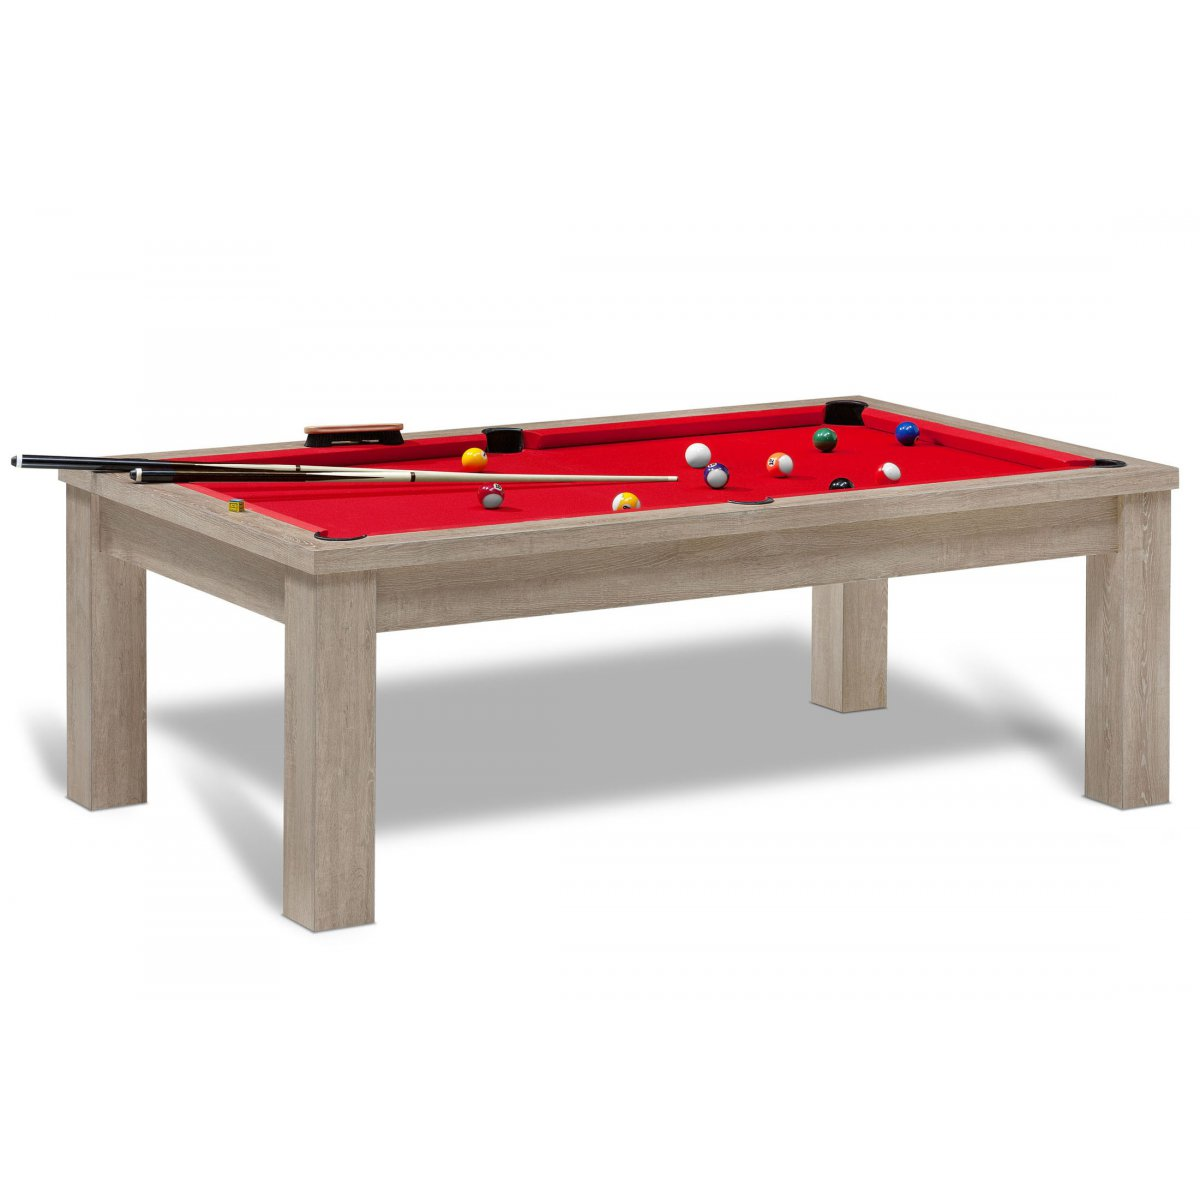 Billard am ricain billard table personnalisable jeux us - Table de salon billard ...